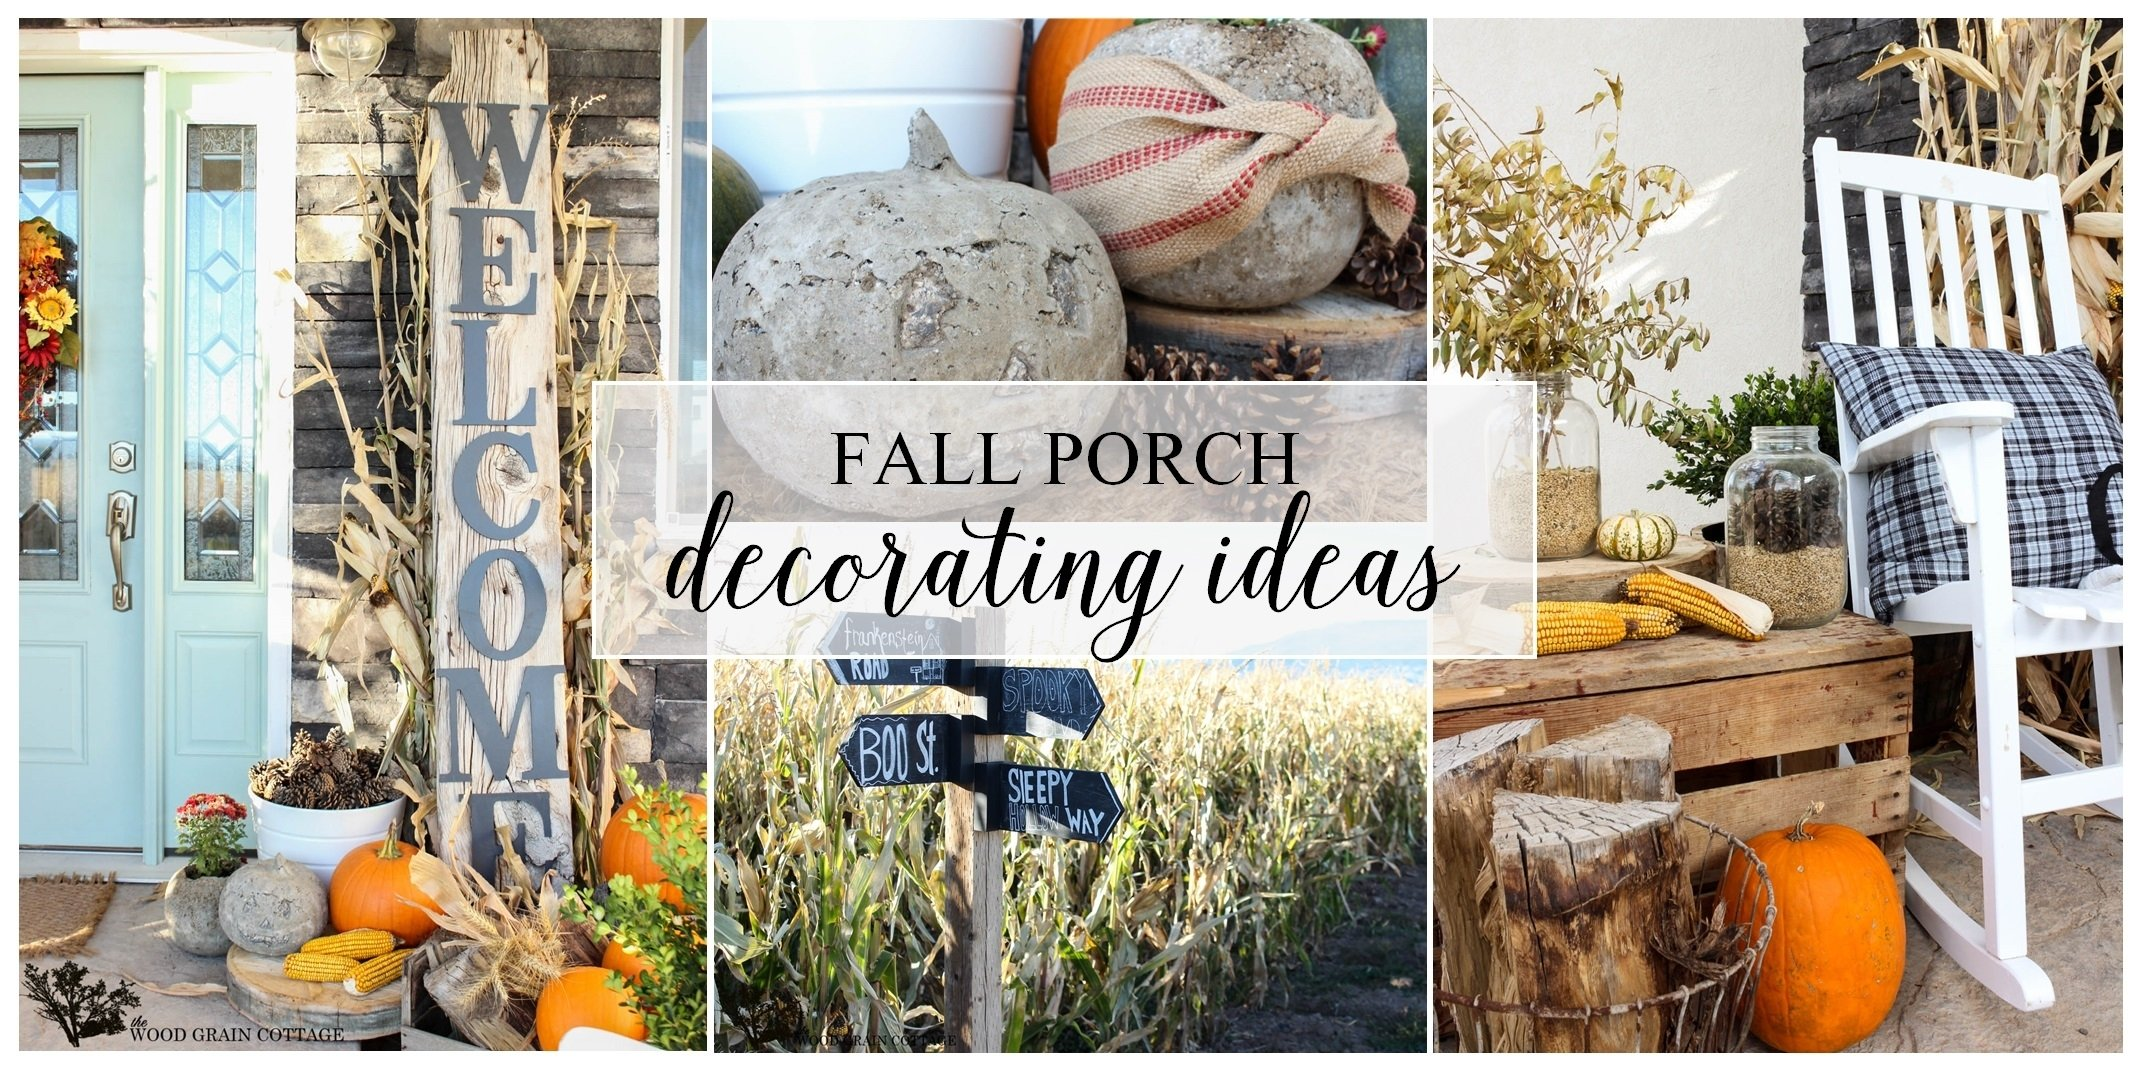 10 Lovely Front Porch Decorating Ideas For Fall fall porch decorating ideas the wood grain cottage 2 2020